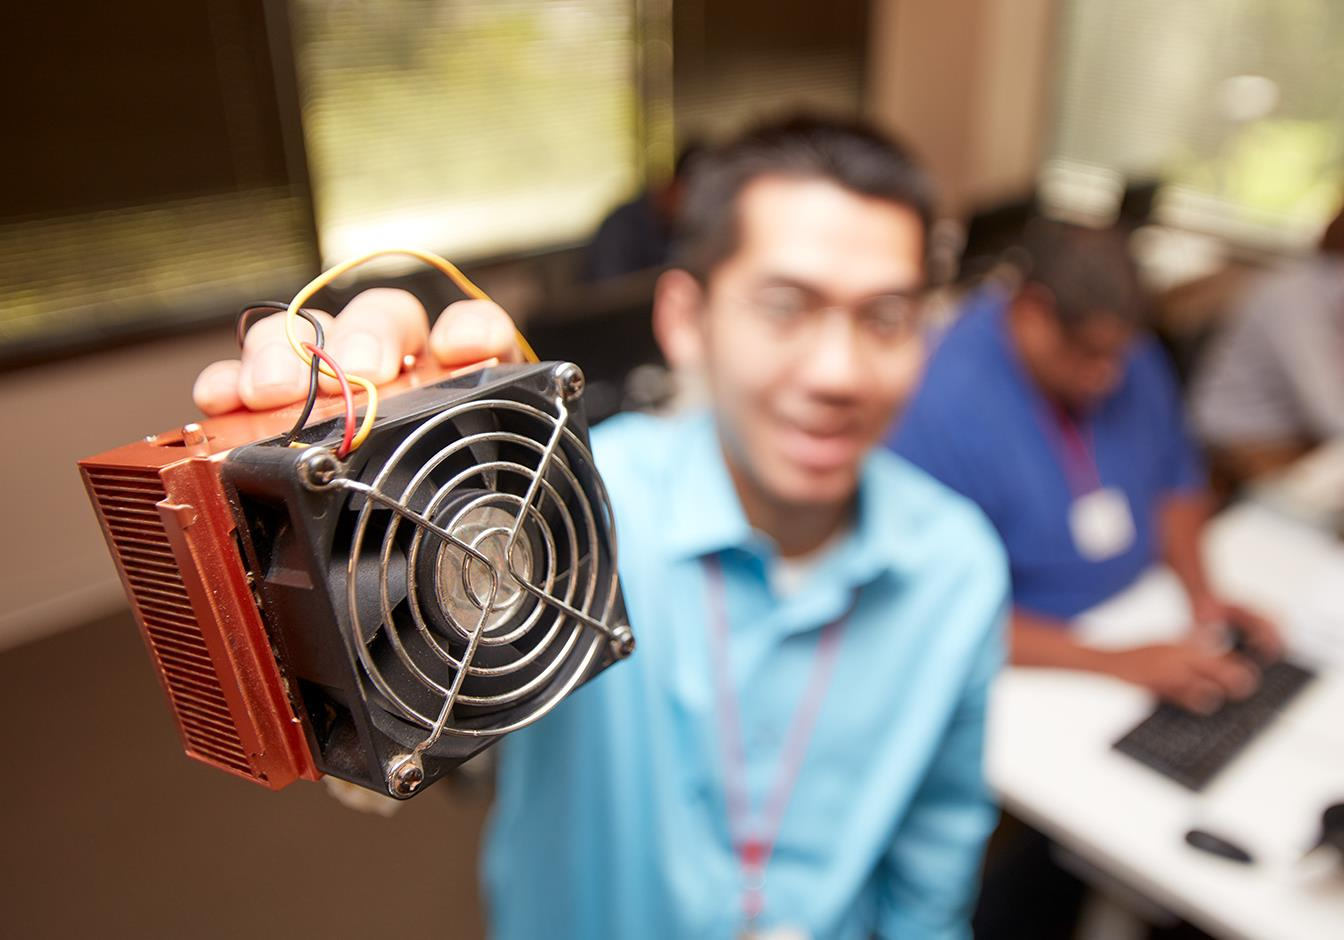 Student Holding Computer Parts